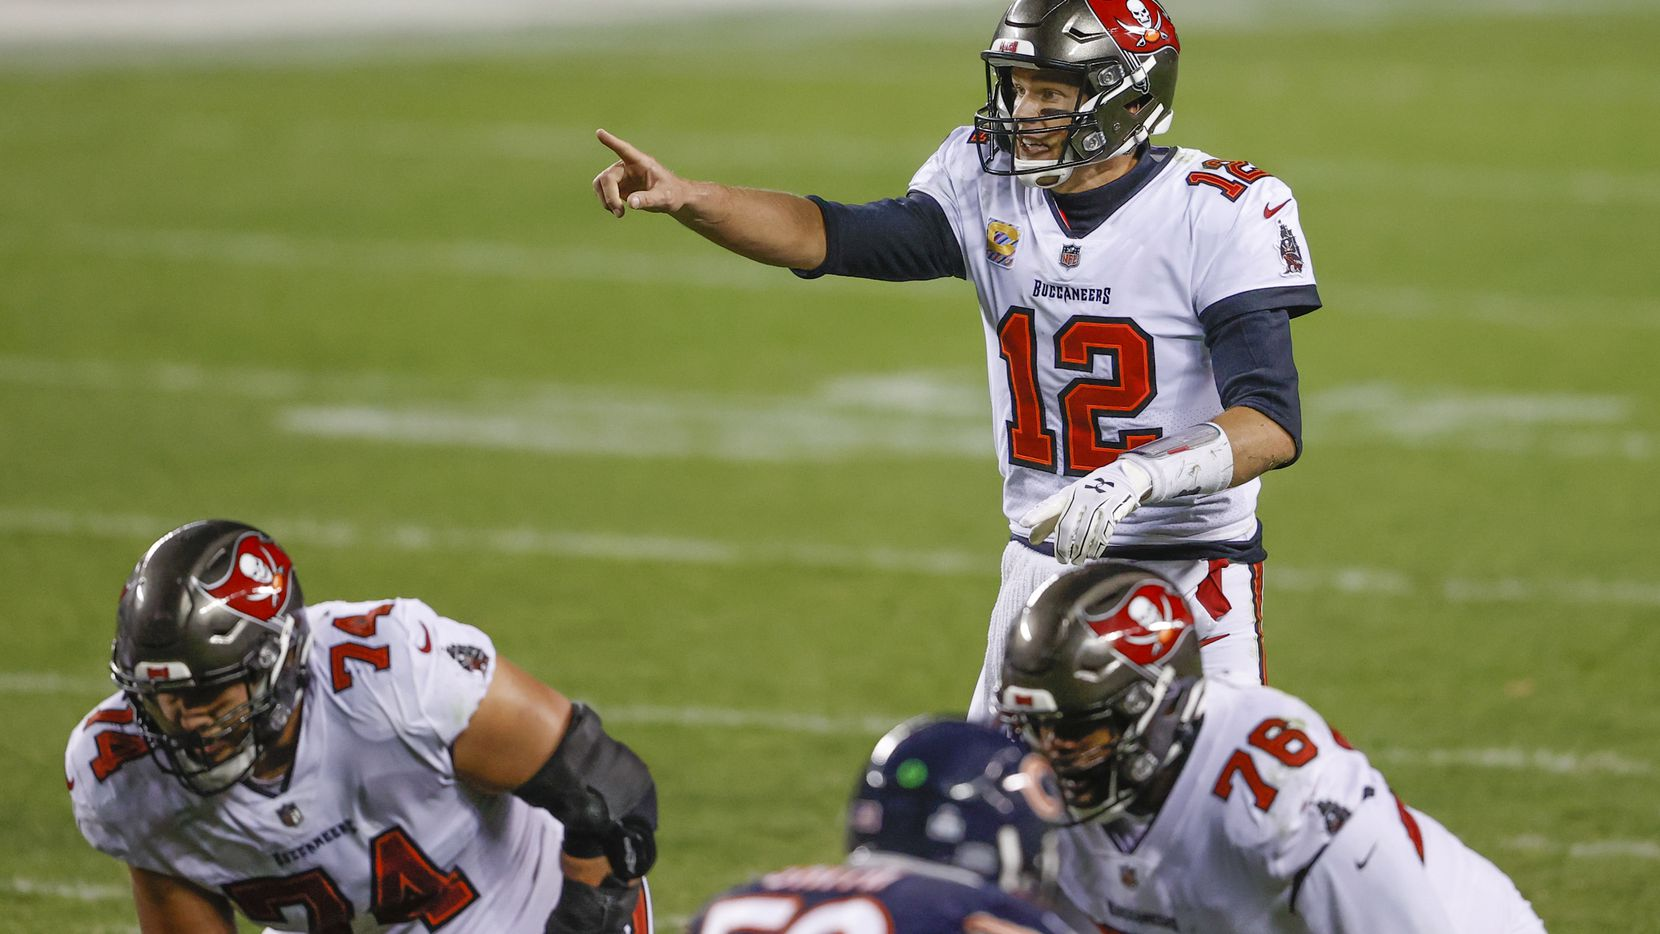 Tampa Bay Buccaneers quarterback Tom Brady (12) directs his teammates against the Chicago Bears during the second half of an NFL football game, Thursday, Oct. 8, 2020, in Chicago. (AP Photo/Kamil Krzaczynski)